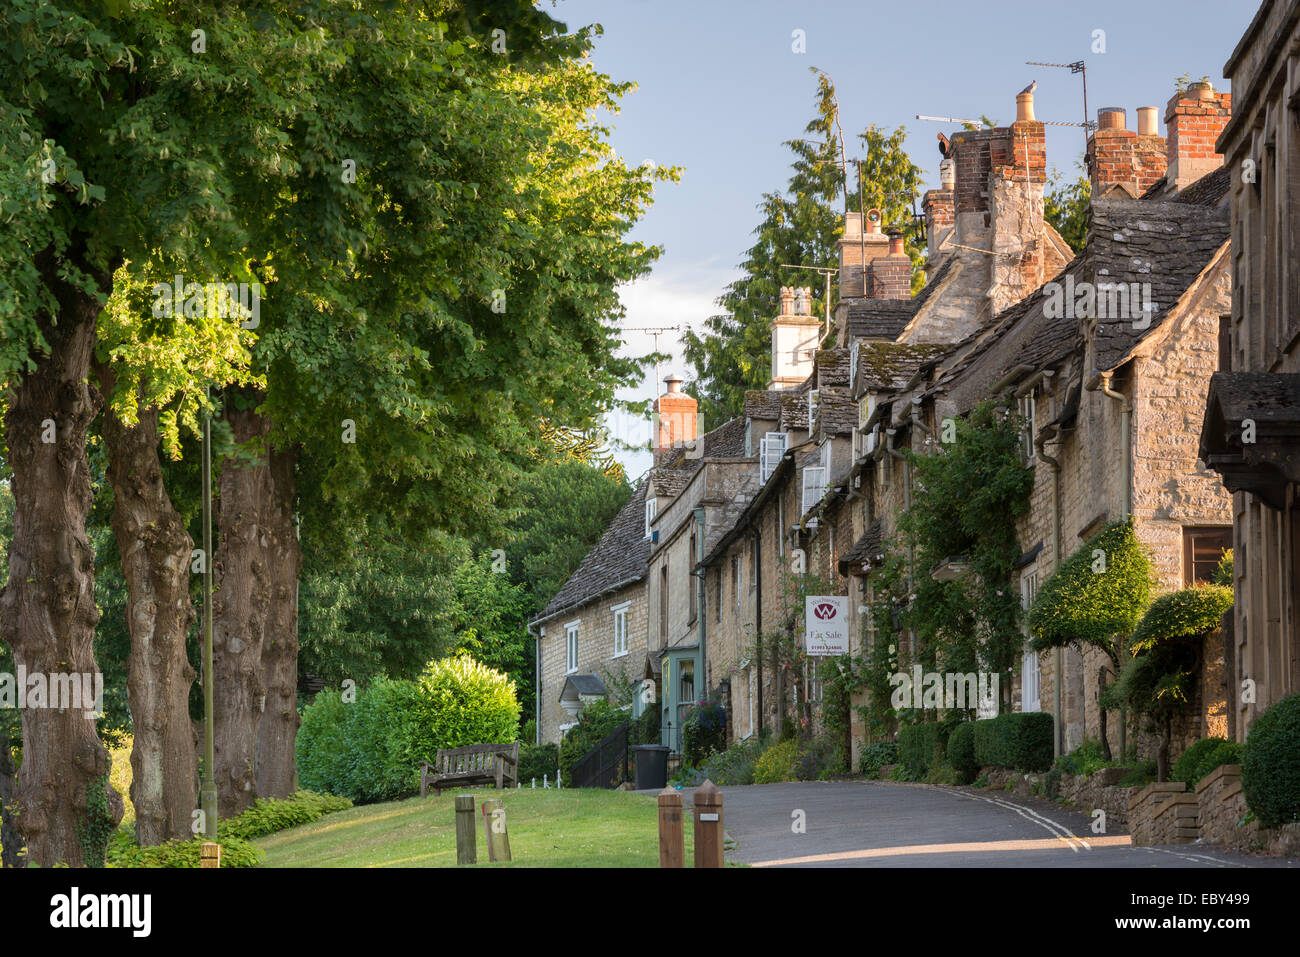 Pretty cottages along The Hill in the Cotswolds town of Burford, Oxfordshire, England. Summer (July) 2014. - Stock Image